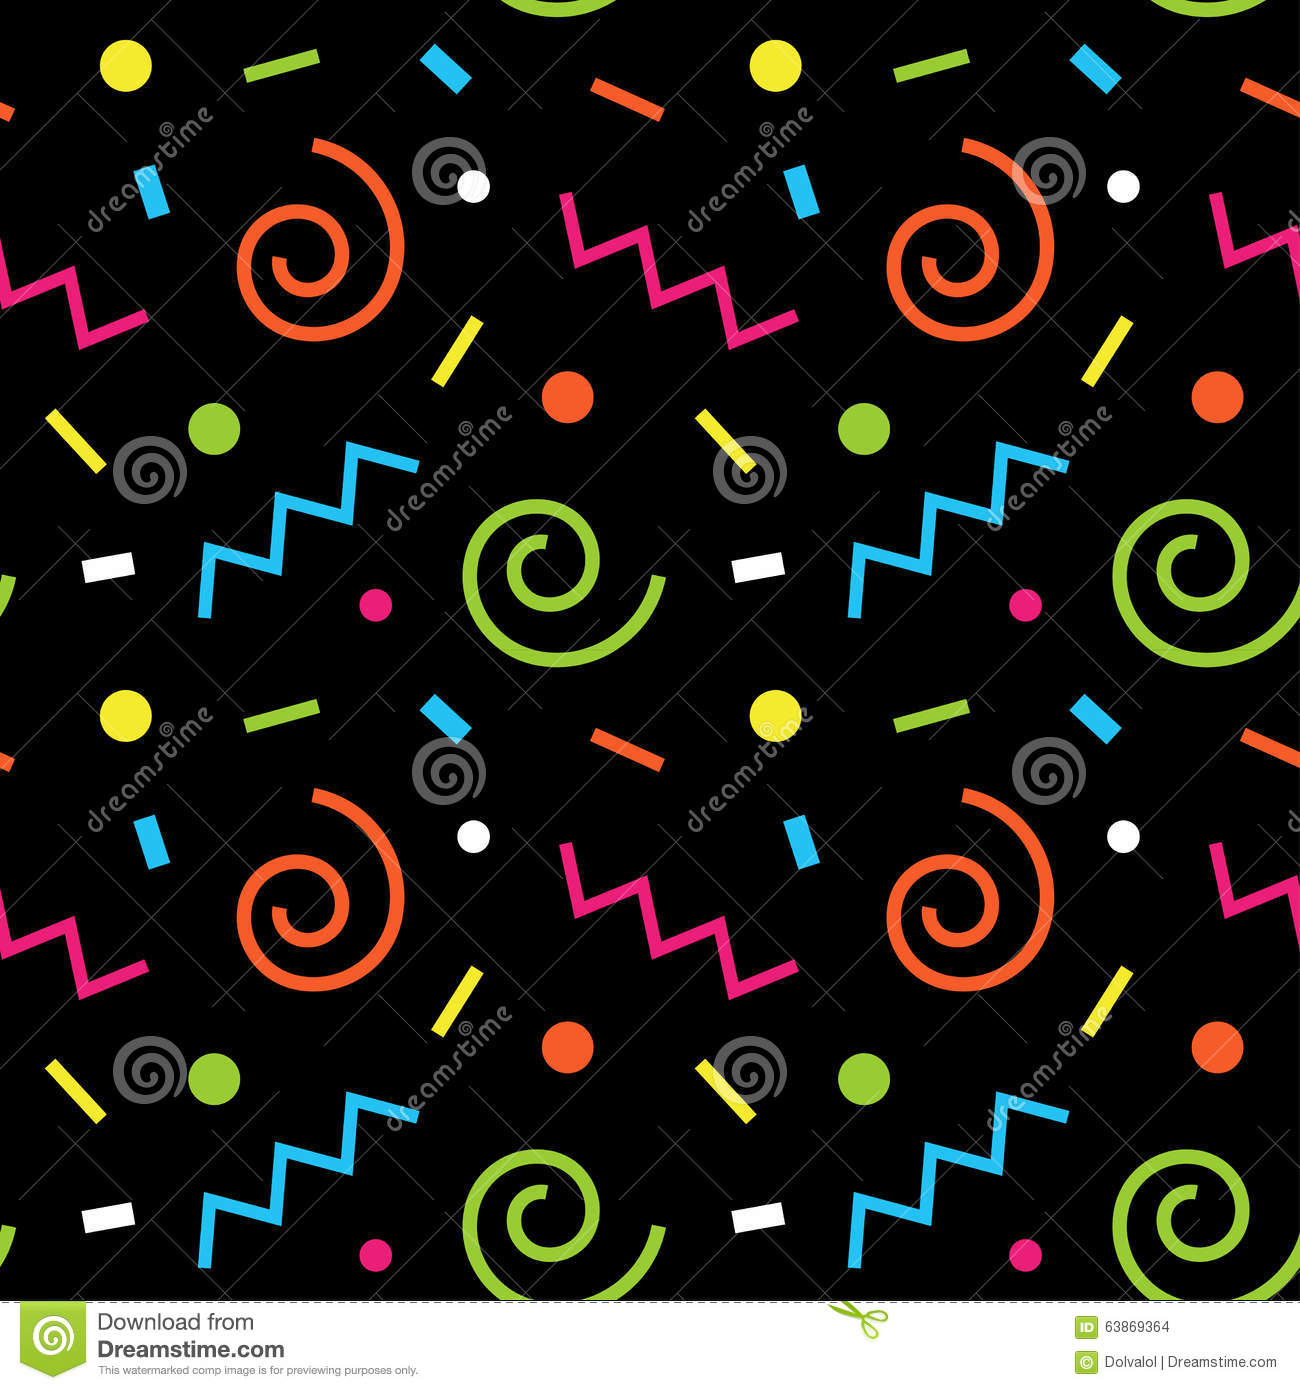 80s Designs 80s background designs images - reverse search